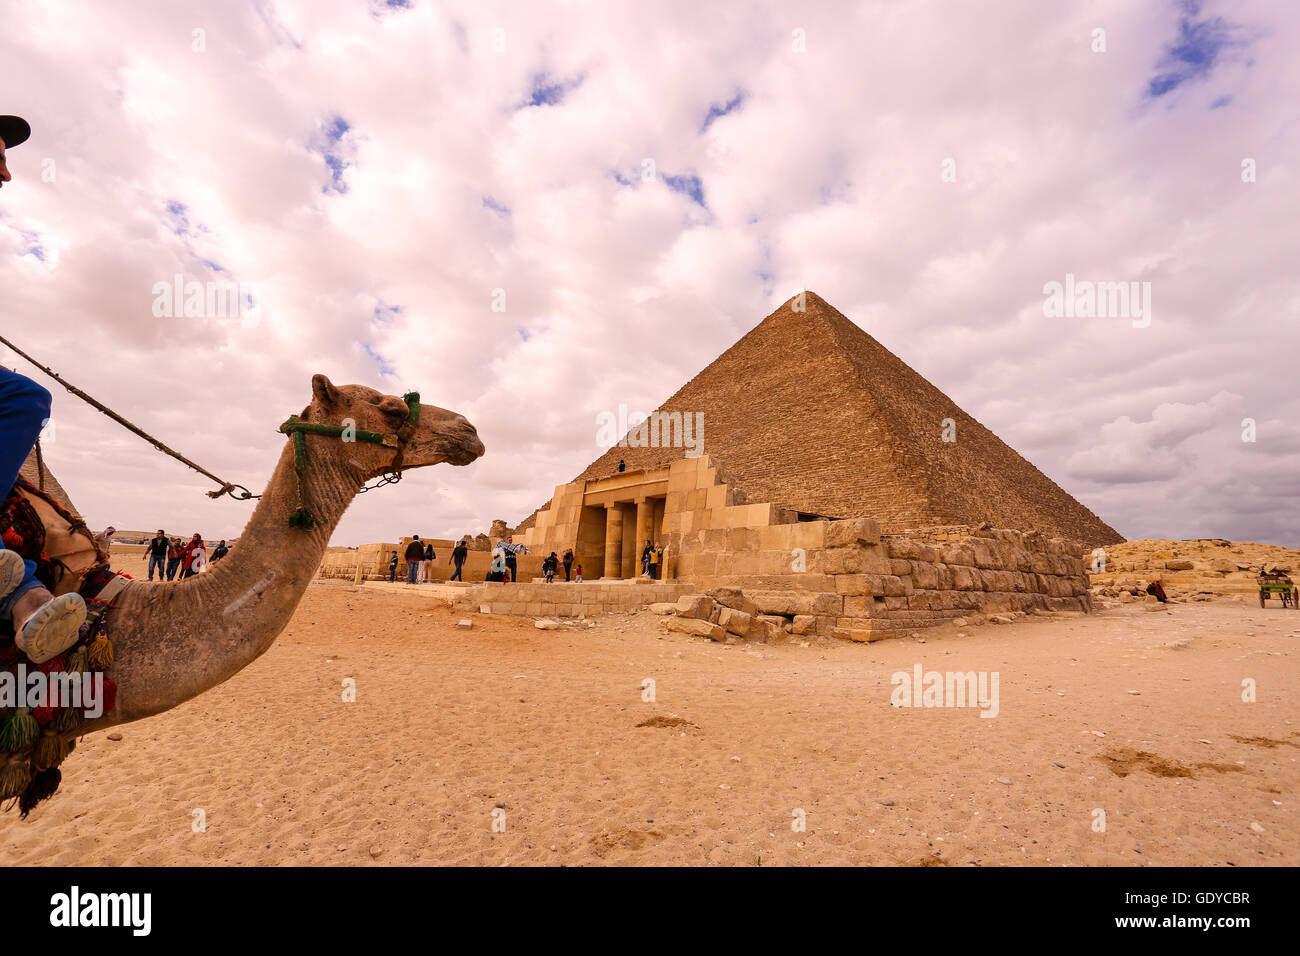 Camel & conducteur au Pyramids, Giza, Le Caire, Egypte Photo Stock